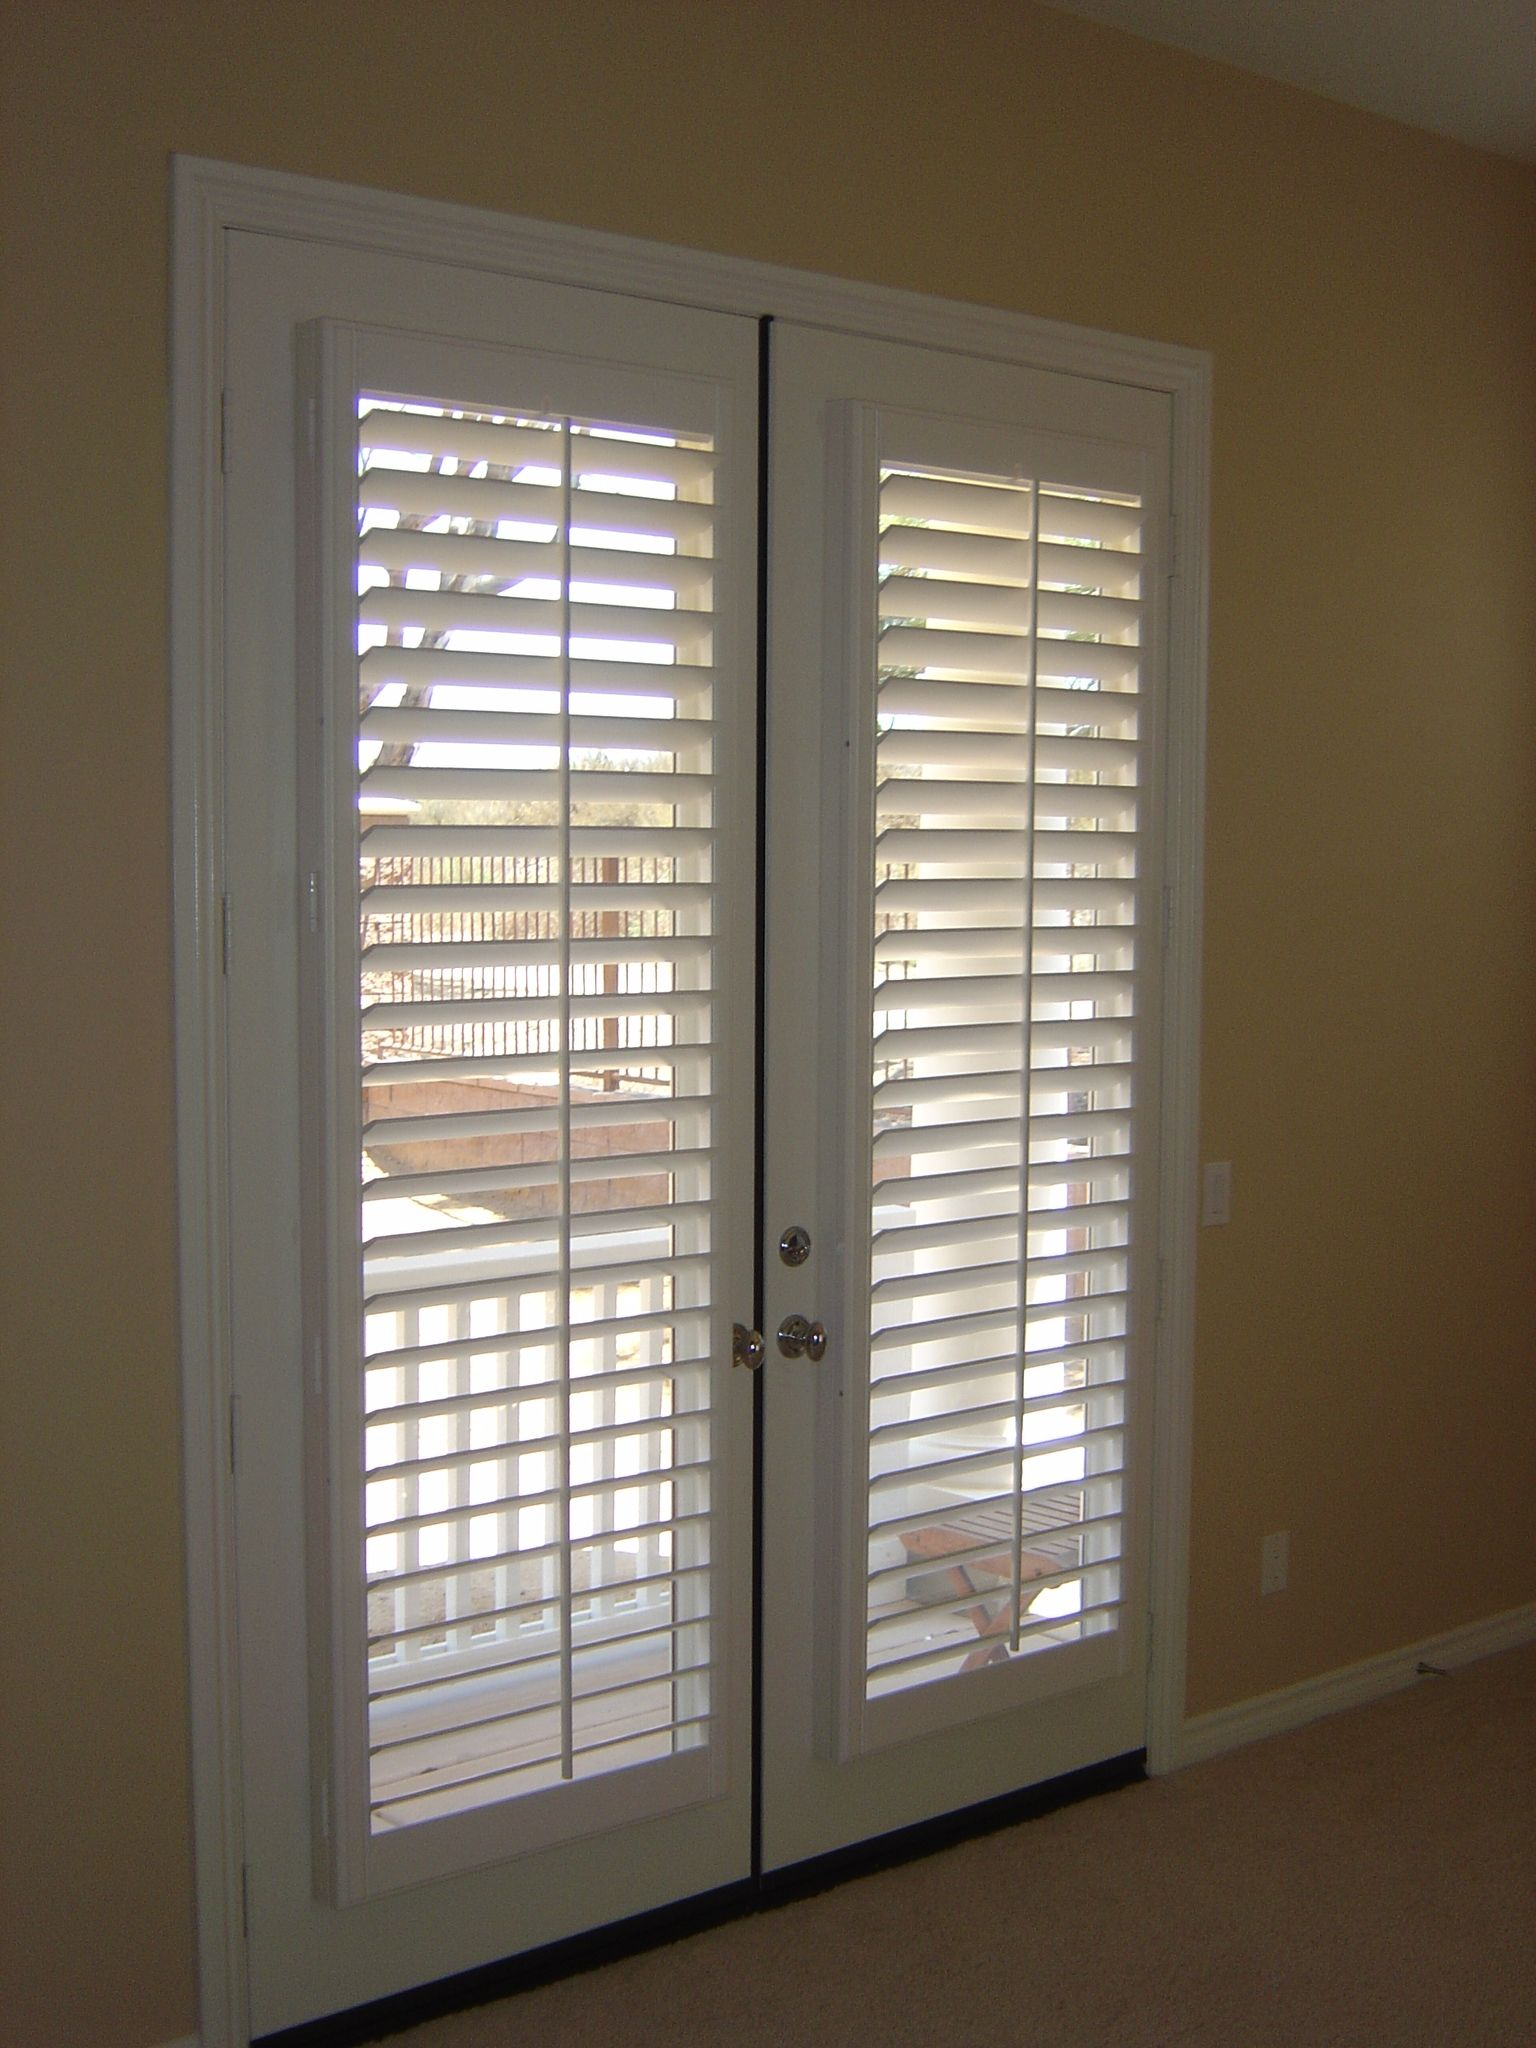 Window treatment ideas for doors 3 blind mice window for Door window shades blinds